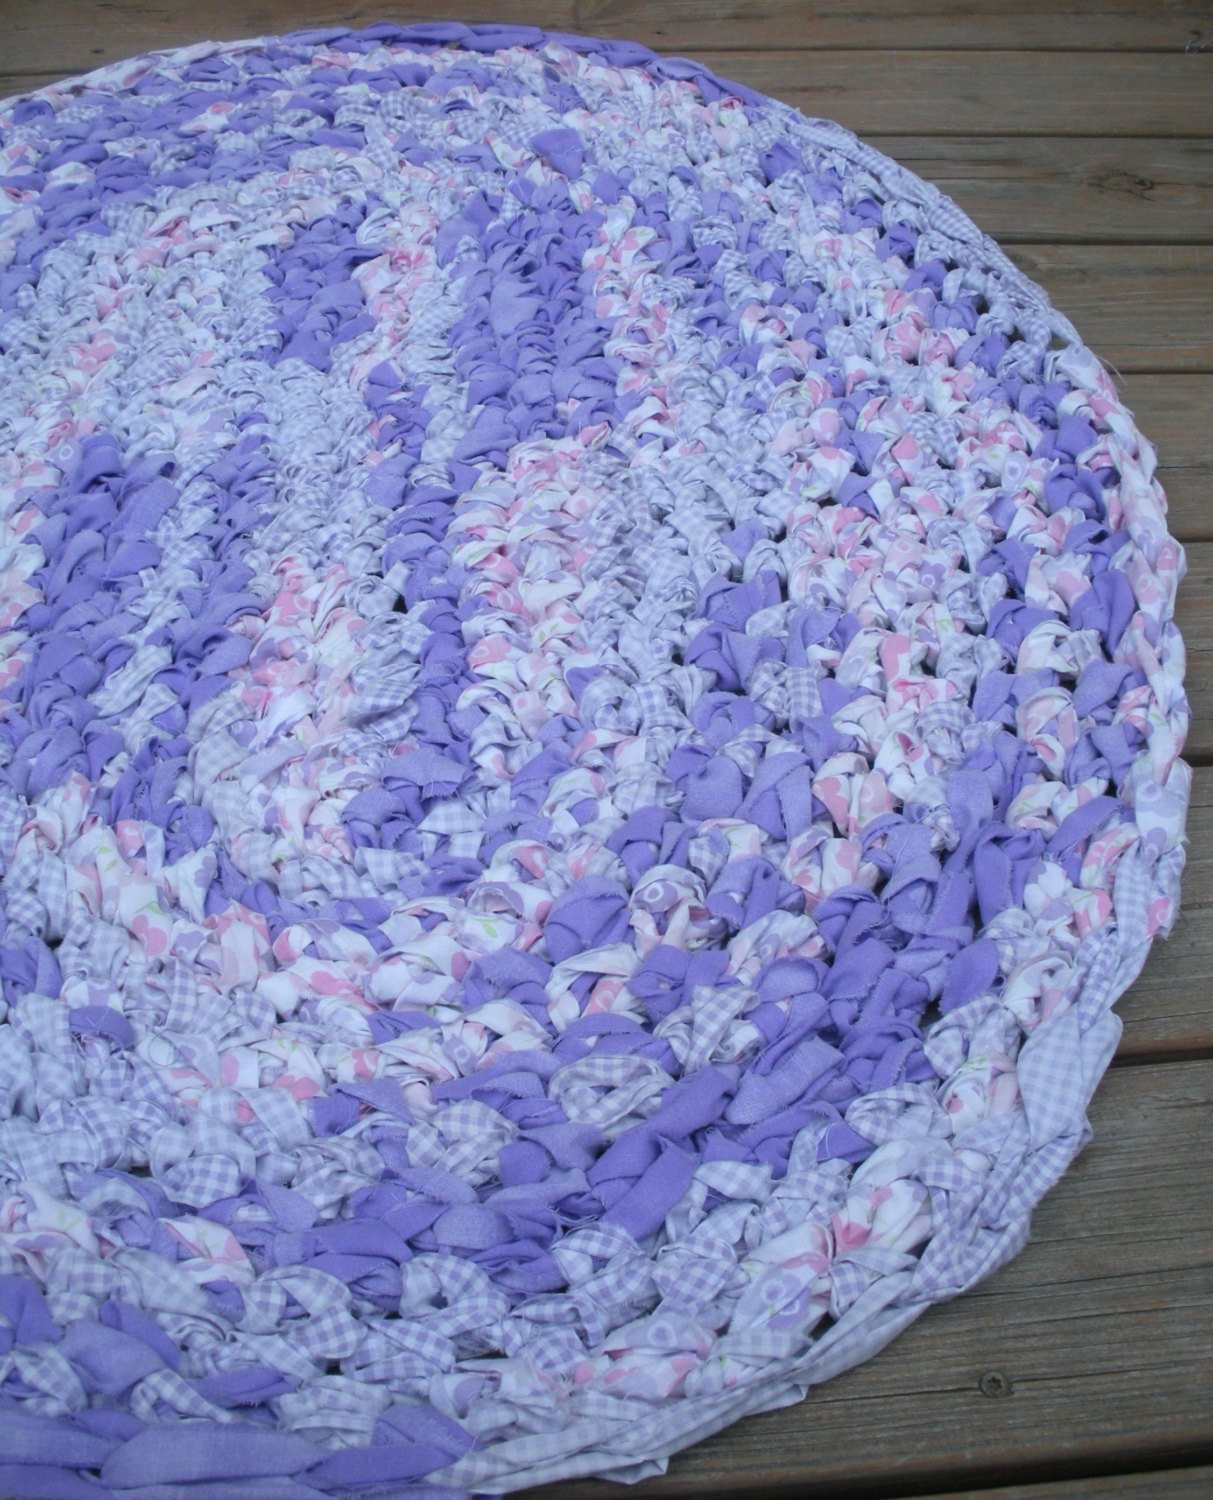 Crochet Oval Rug Lovely 40×28 Hand Crocheted Oval Rag Rug Purple Pink by Of Charming 49 Images Crochet Oval Rug